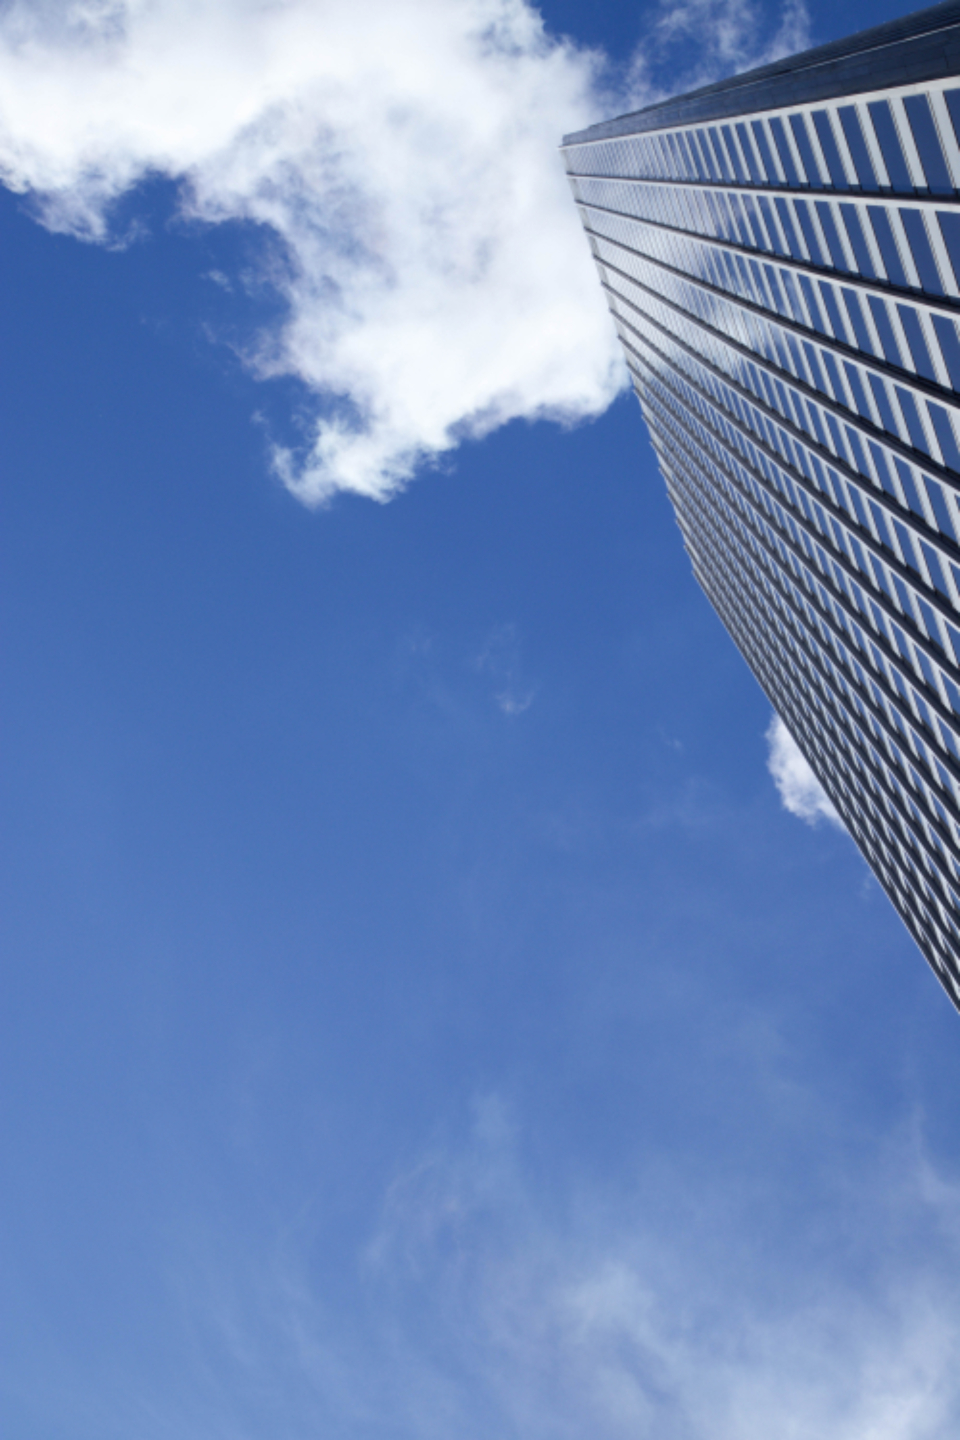 city building windows sky clouds downtown urban skyscraper architecture daytime business copyspace perspective exterior modern